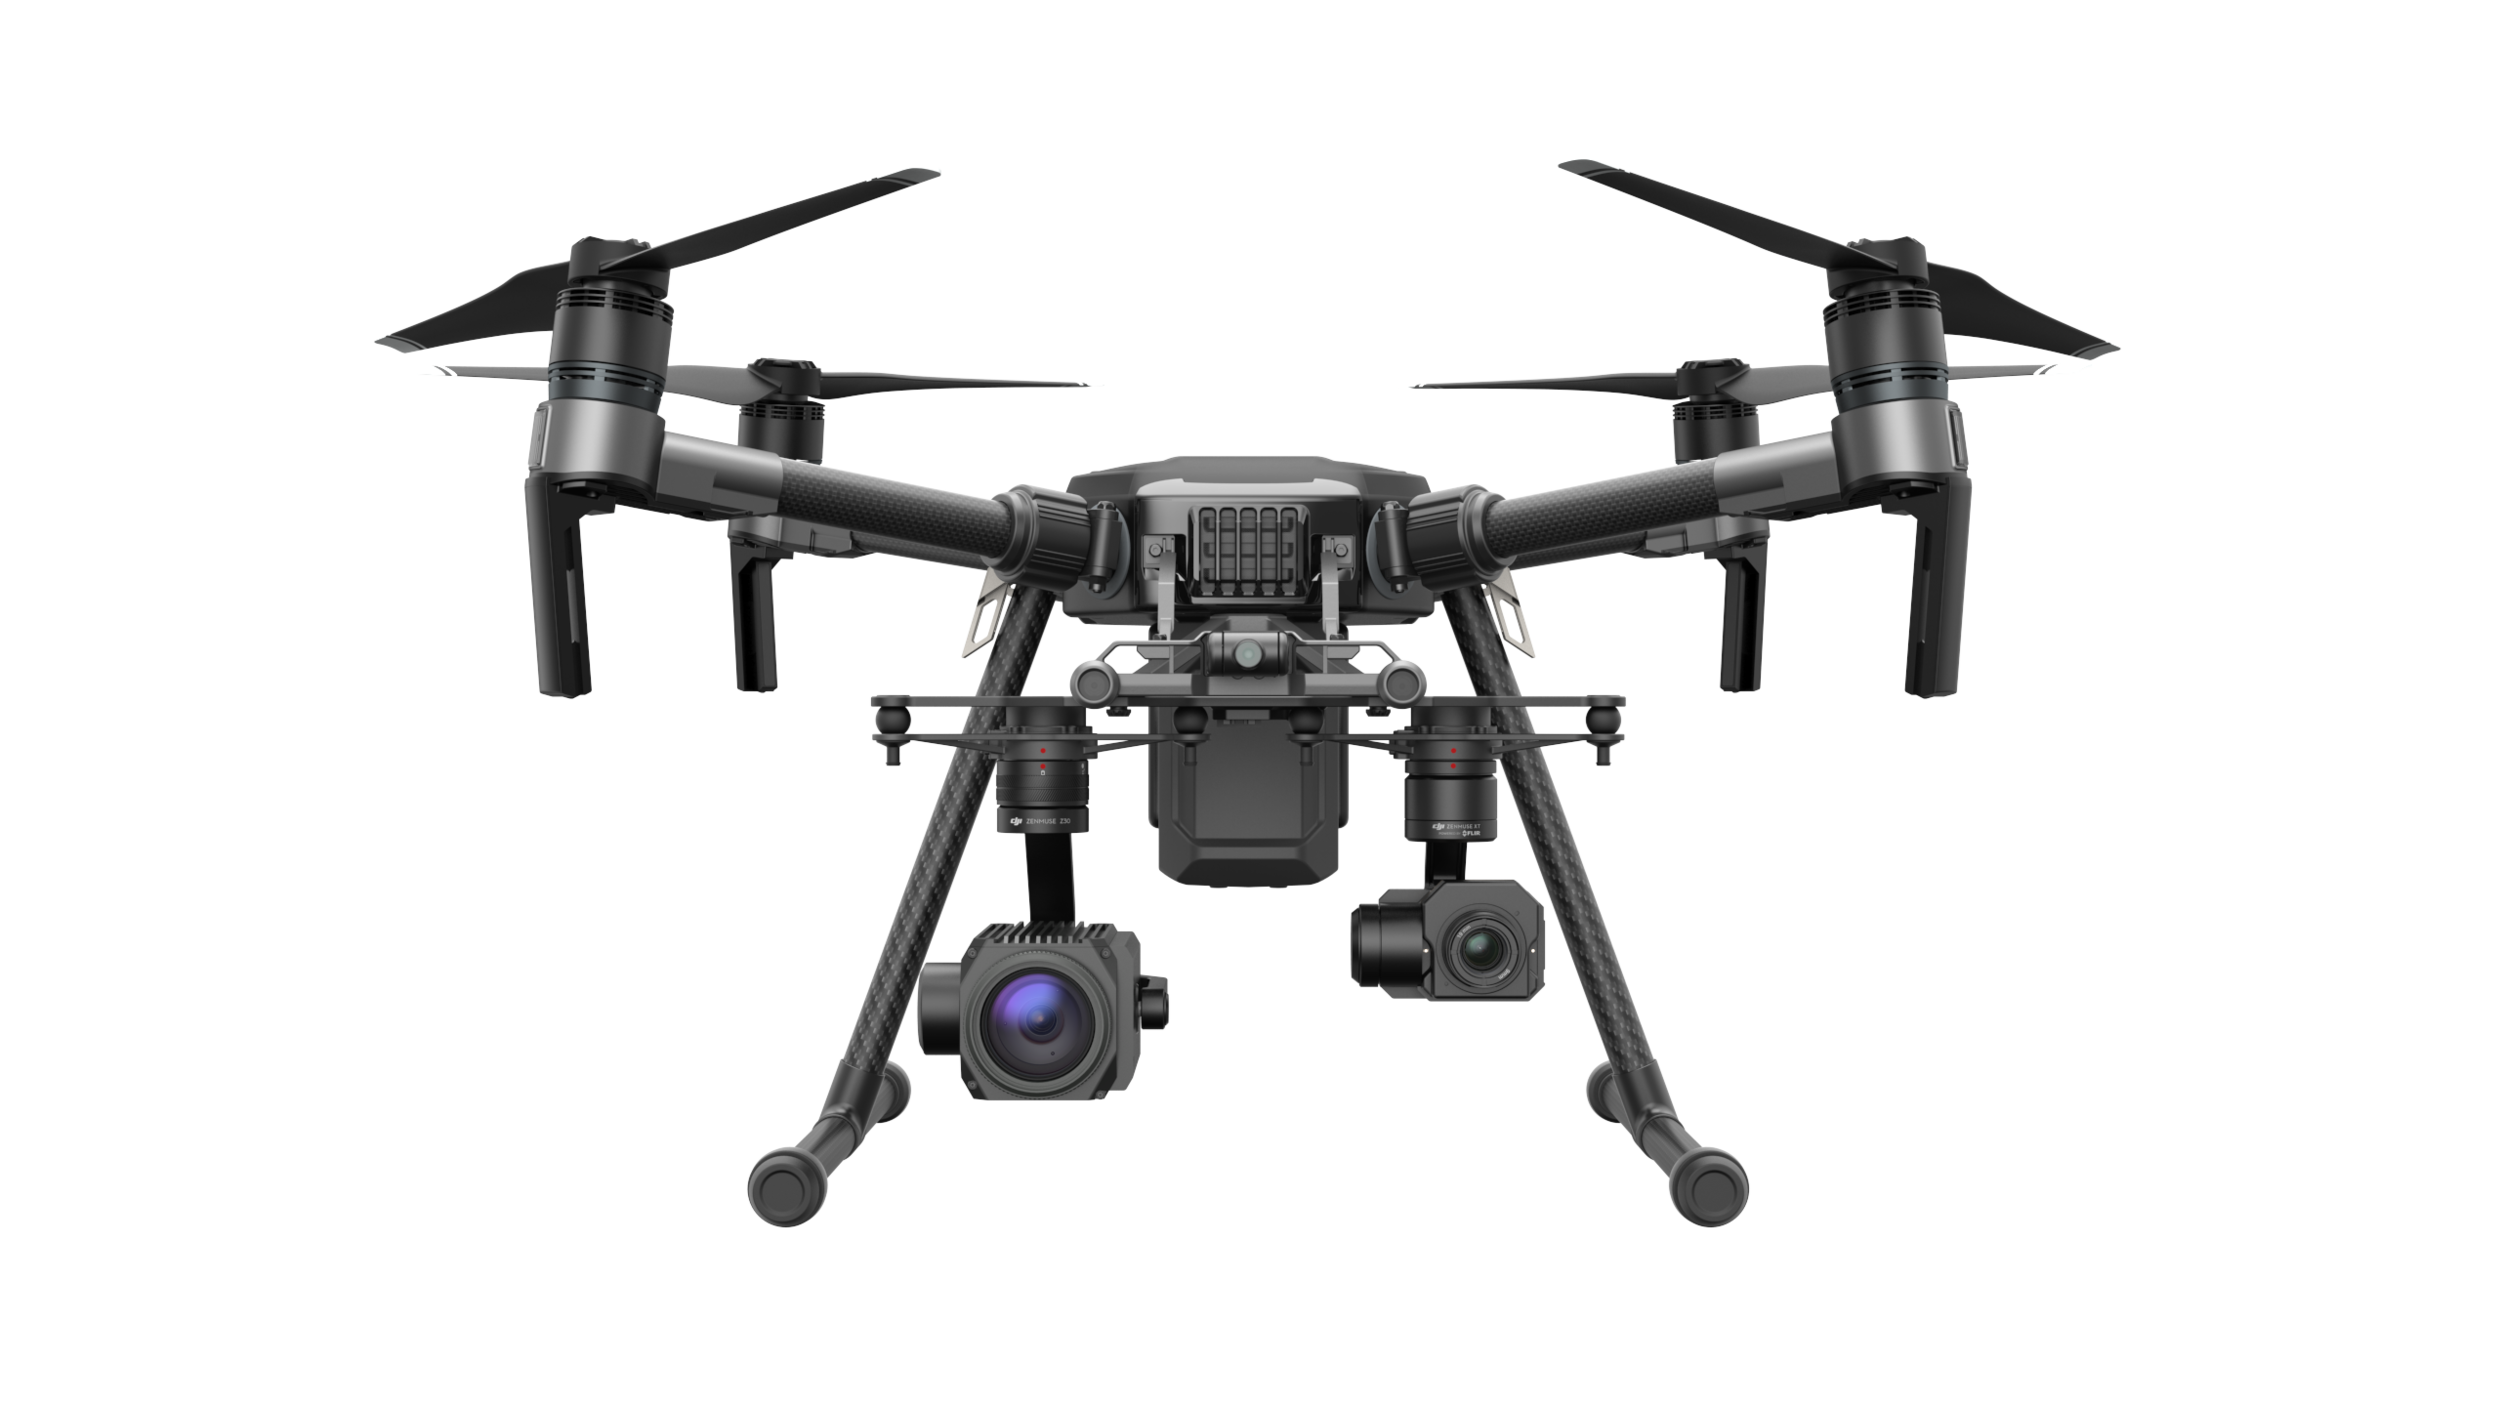 DJI Matrice is the workhorse drone of the DJI family.